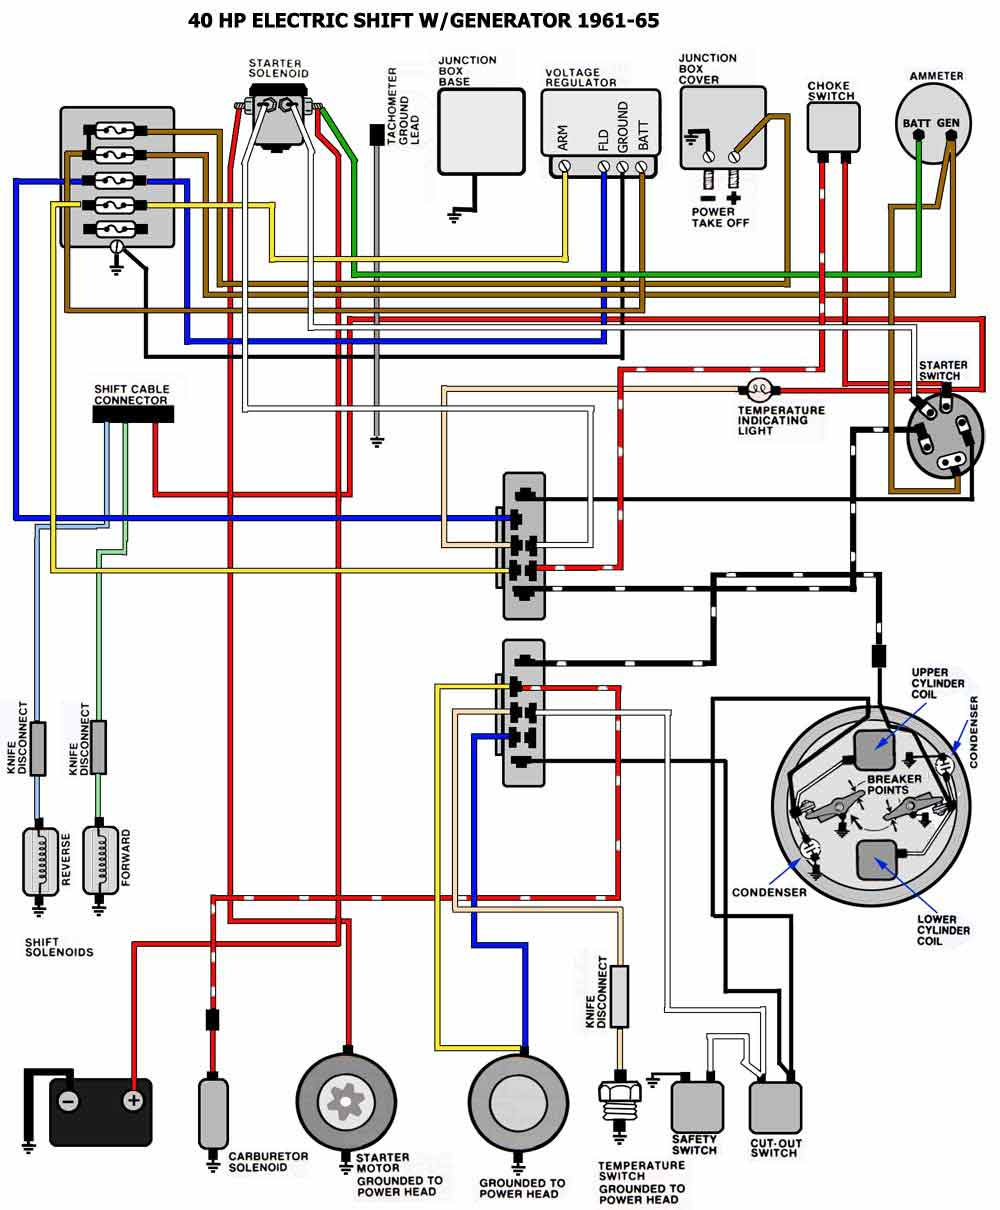 Omc Kill Switch Wiring Diagram - Schema Wiring Diagrams  Mercury Marine Ignition Switch Wiring Diagram on mercury white ignition switch wiring diagram, mercury key switch wiring diagram, mercury marine kill switch, mercury outboard control wiring diagram, mercury marine ignition switch connector,